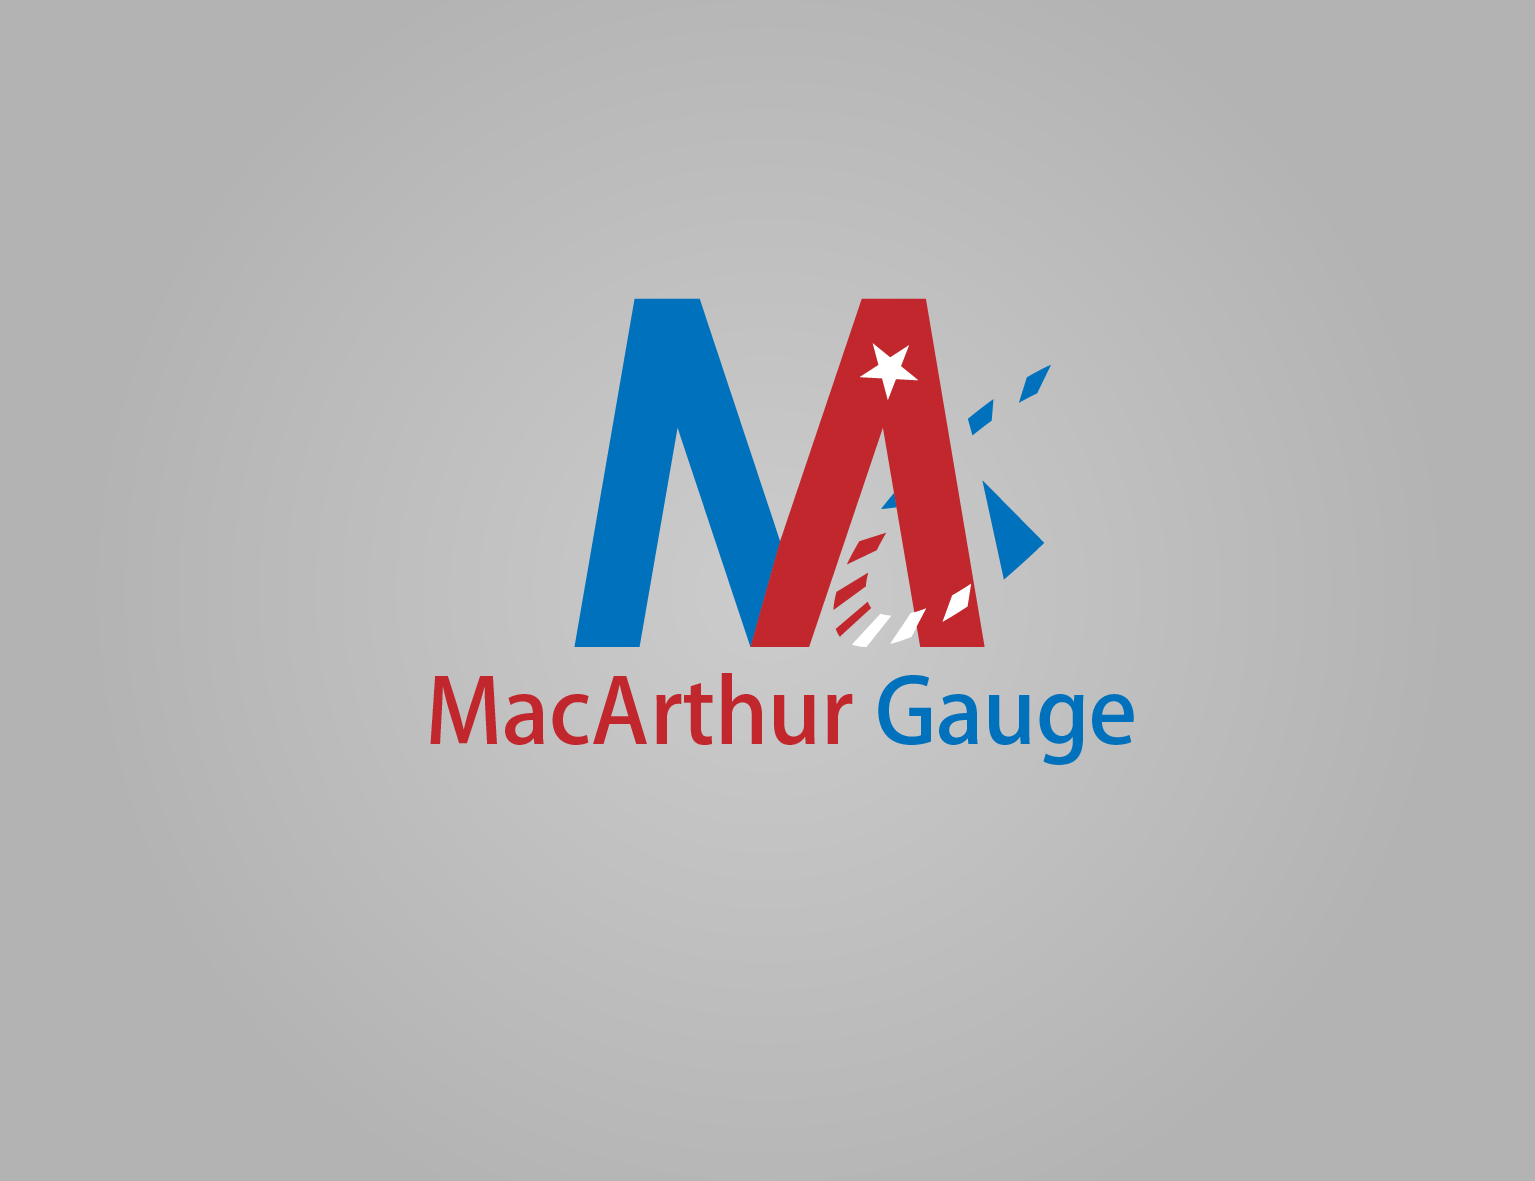 Logo Design by 3draw - Entry No. 221 in the Logo Design Contest Fun Logo Design for MacArthur Gauge.